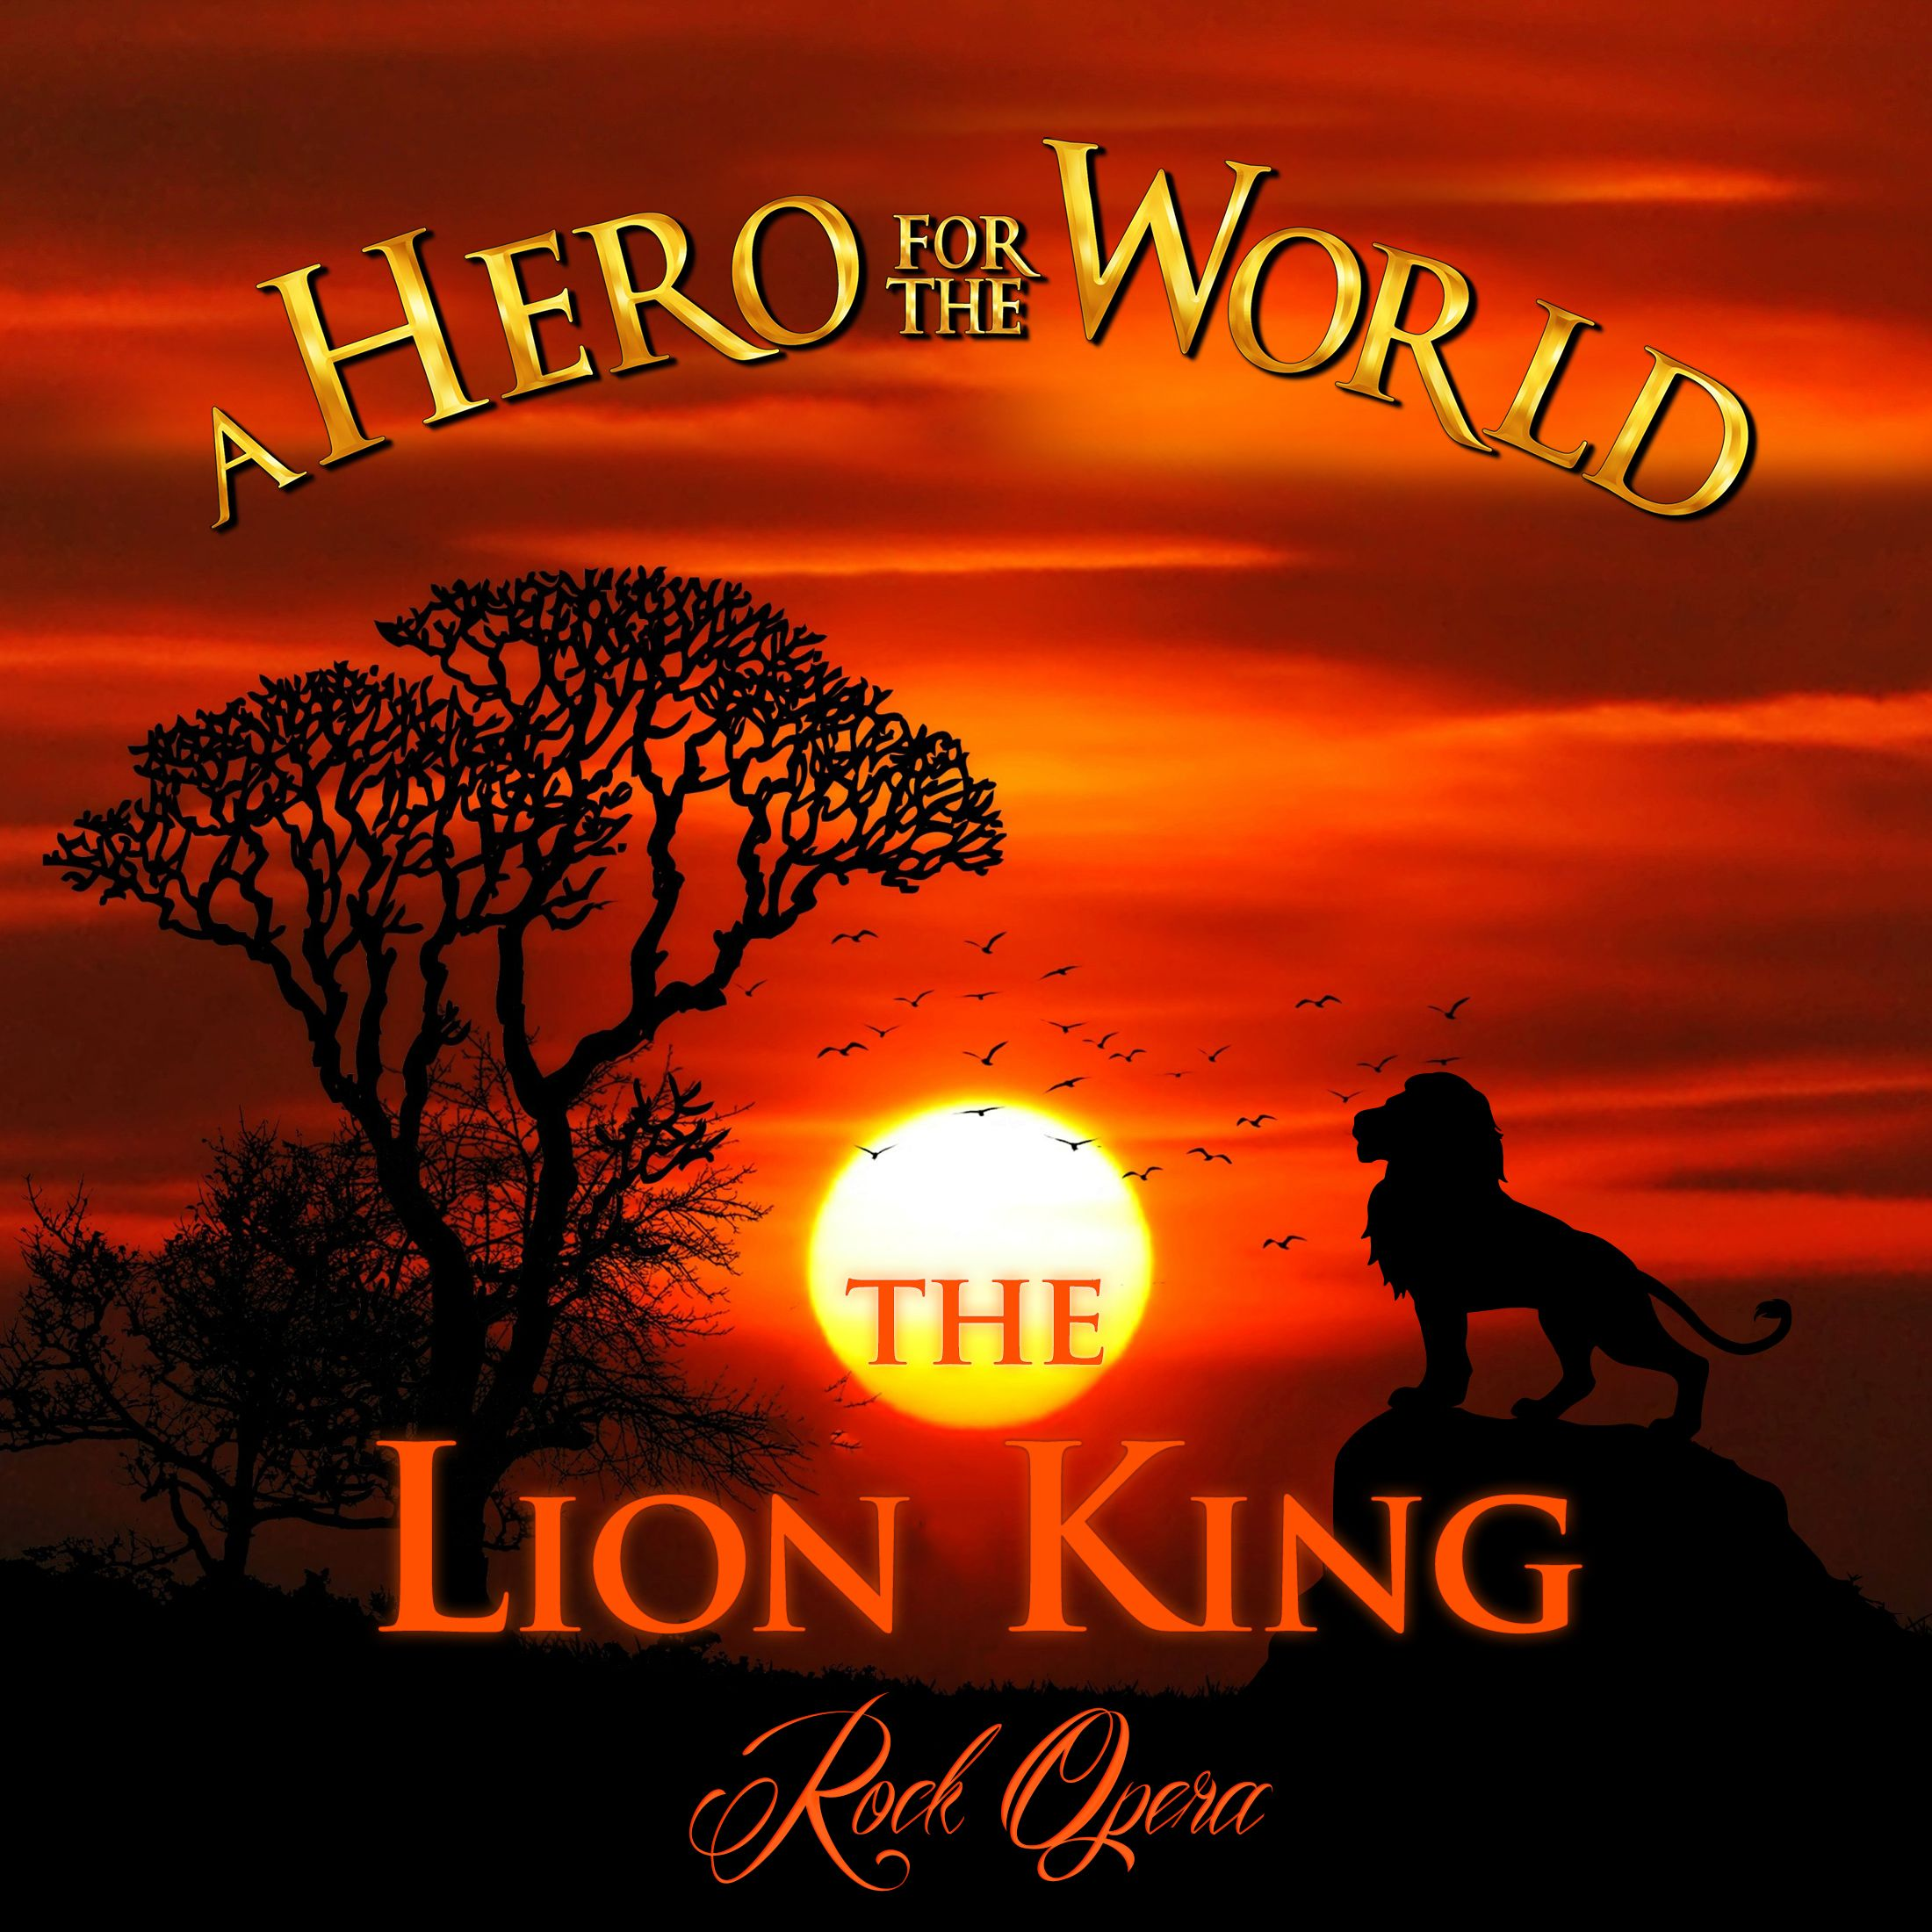 The Lion King Rock Opera - A HERO FOR THE WORLD